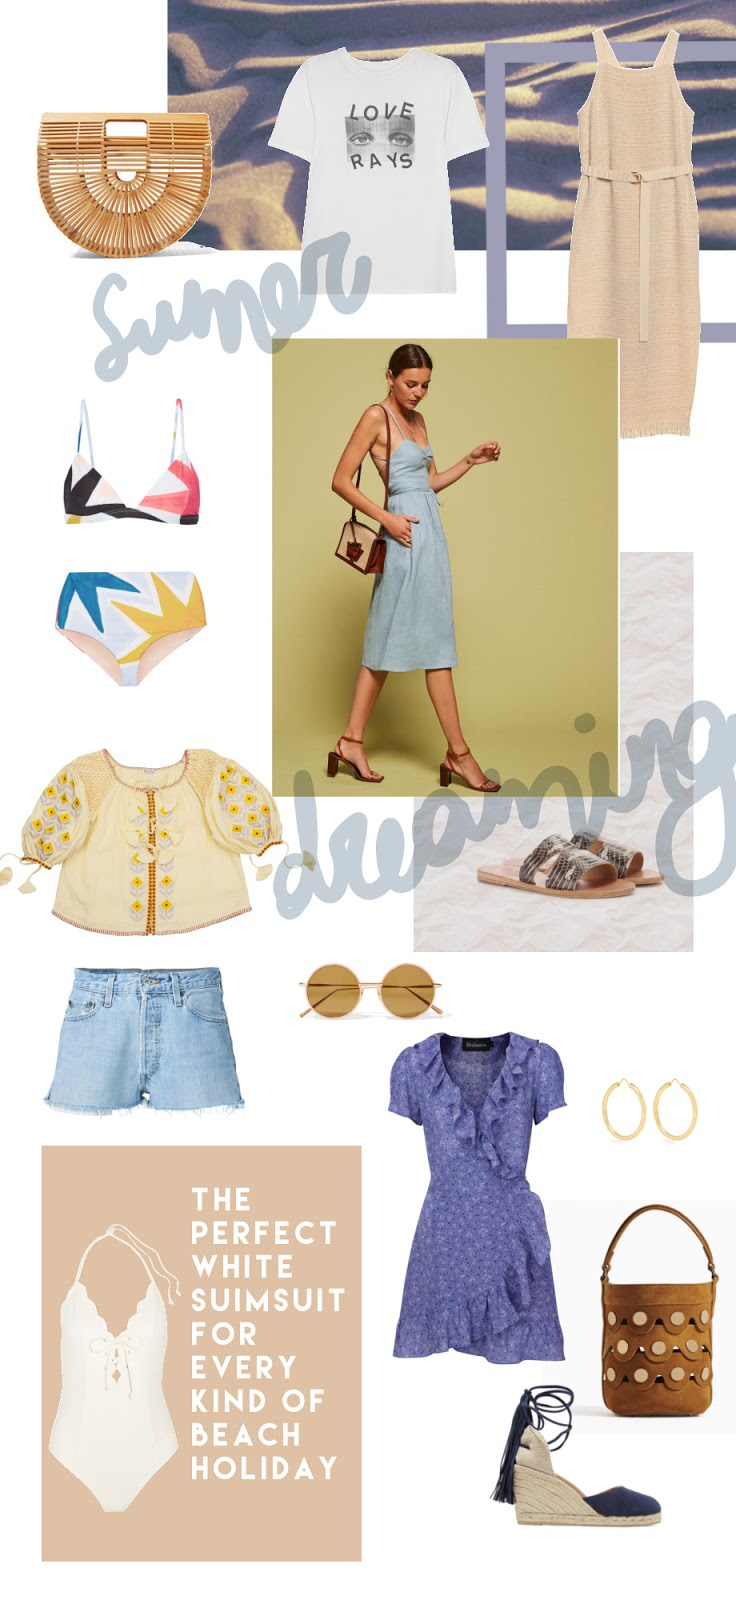 summer wishlist | high-end | luxury | dresses |denim shorts | swimsuits | blouse | sunglasses |the reformation | realisation par | cult gaia ark bag | castaner espadrilles | mara hoffman | marysia |acne studios | innika choo | pierre hardy | theodora warre | www.theblushfulhippocrene.blogspot.com